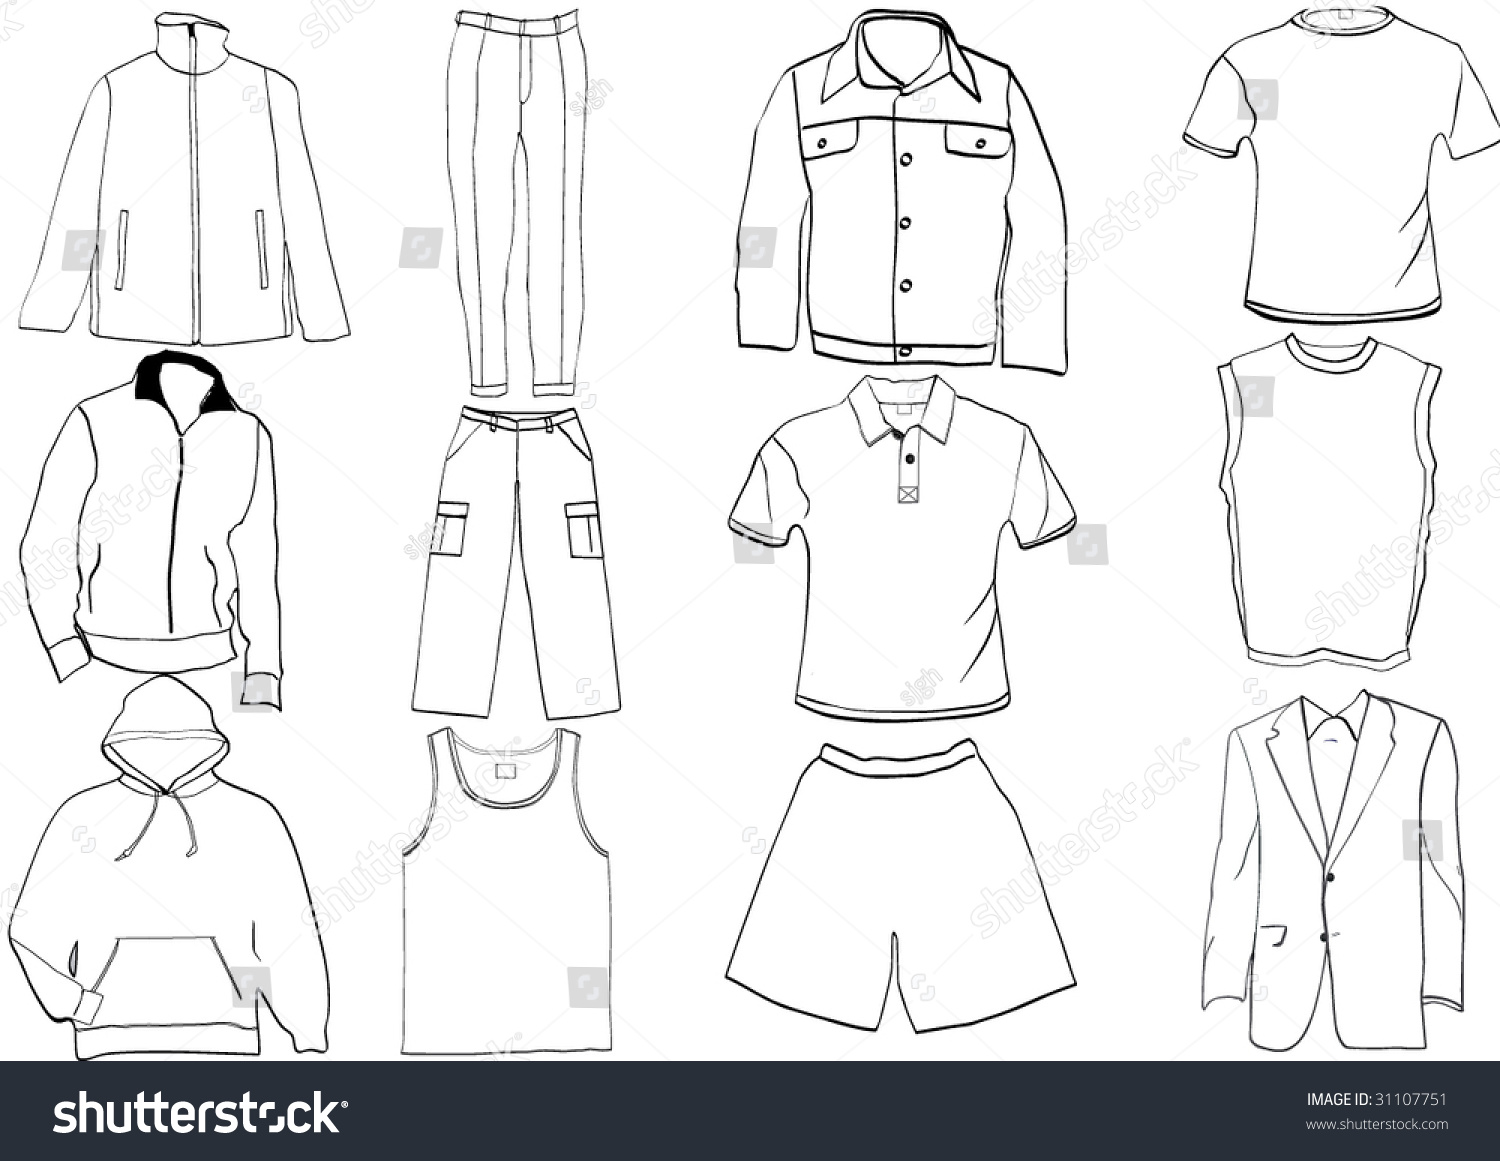 Royalty Free Clothes Template Collection 31107751 Stock